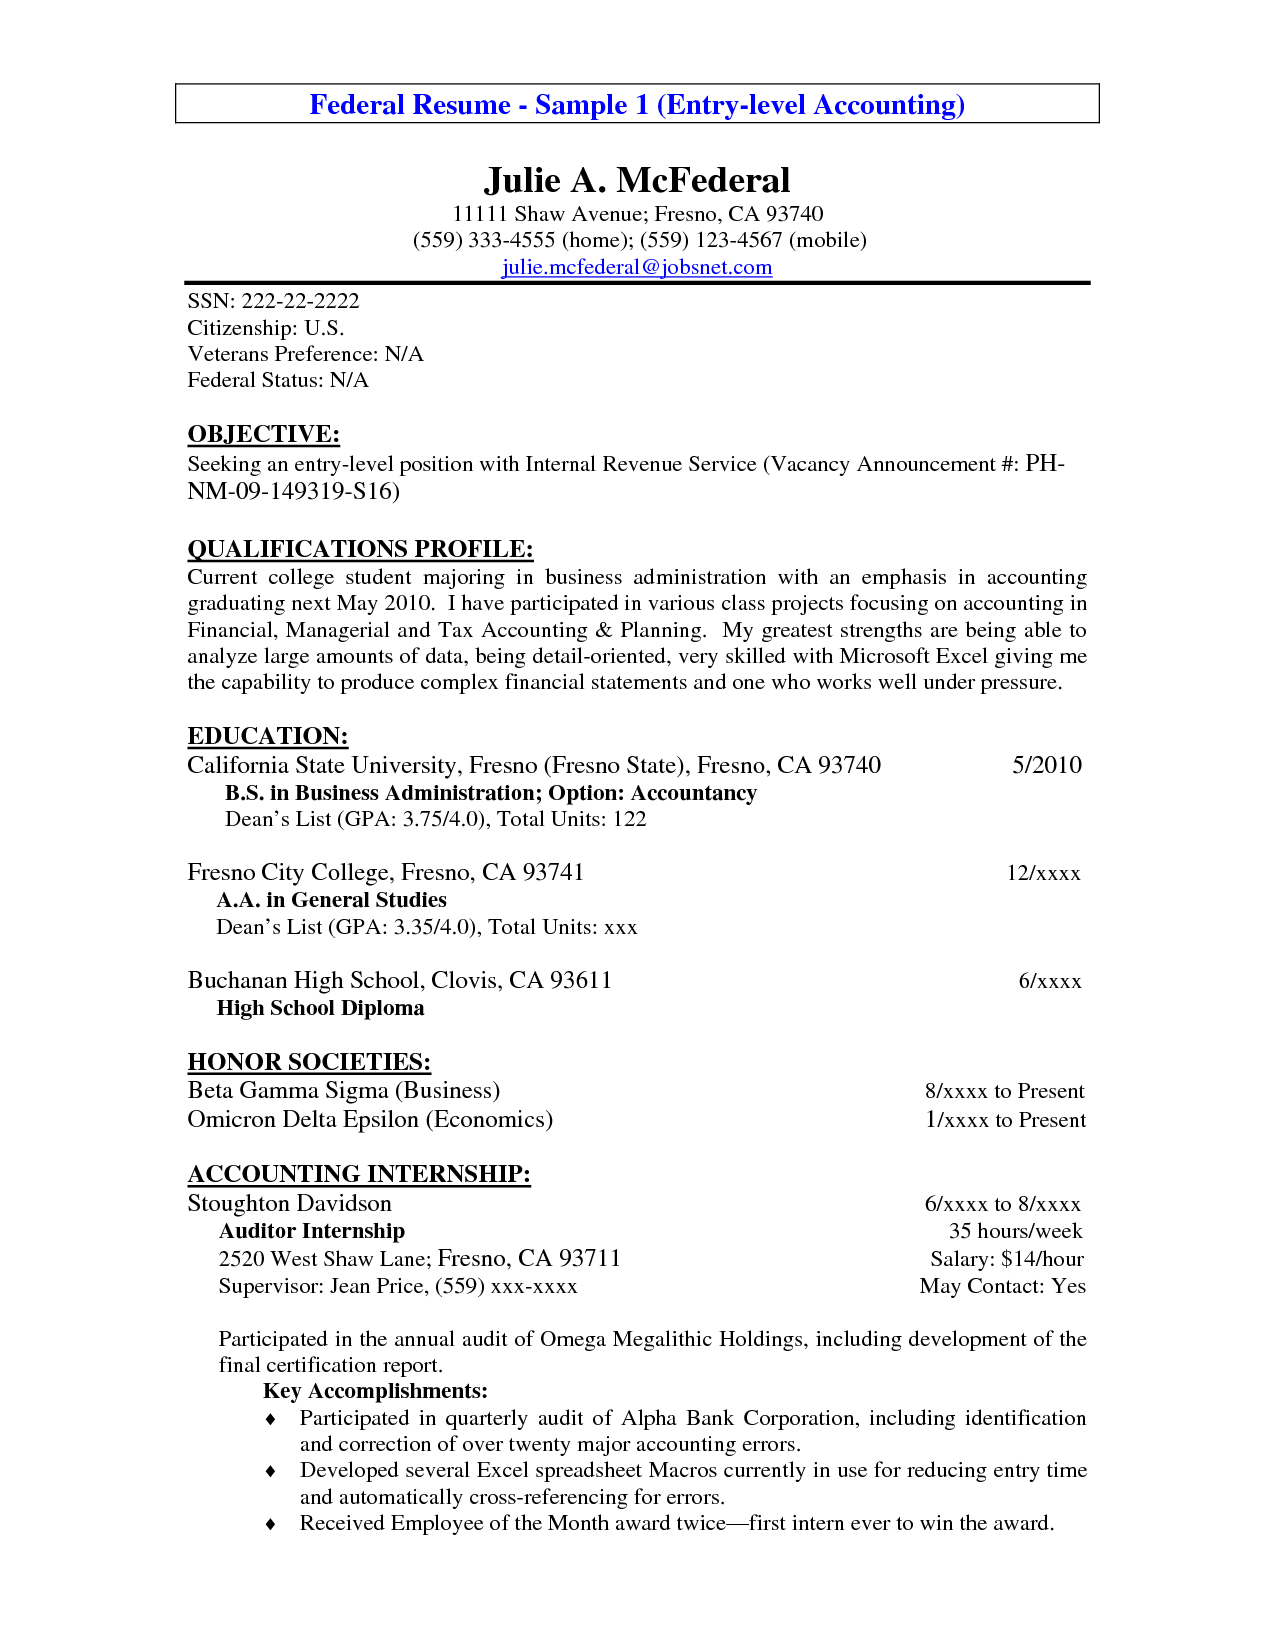 internship resume objectives